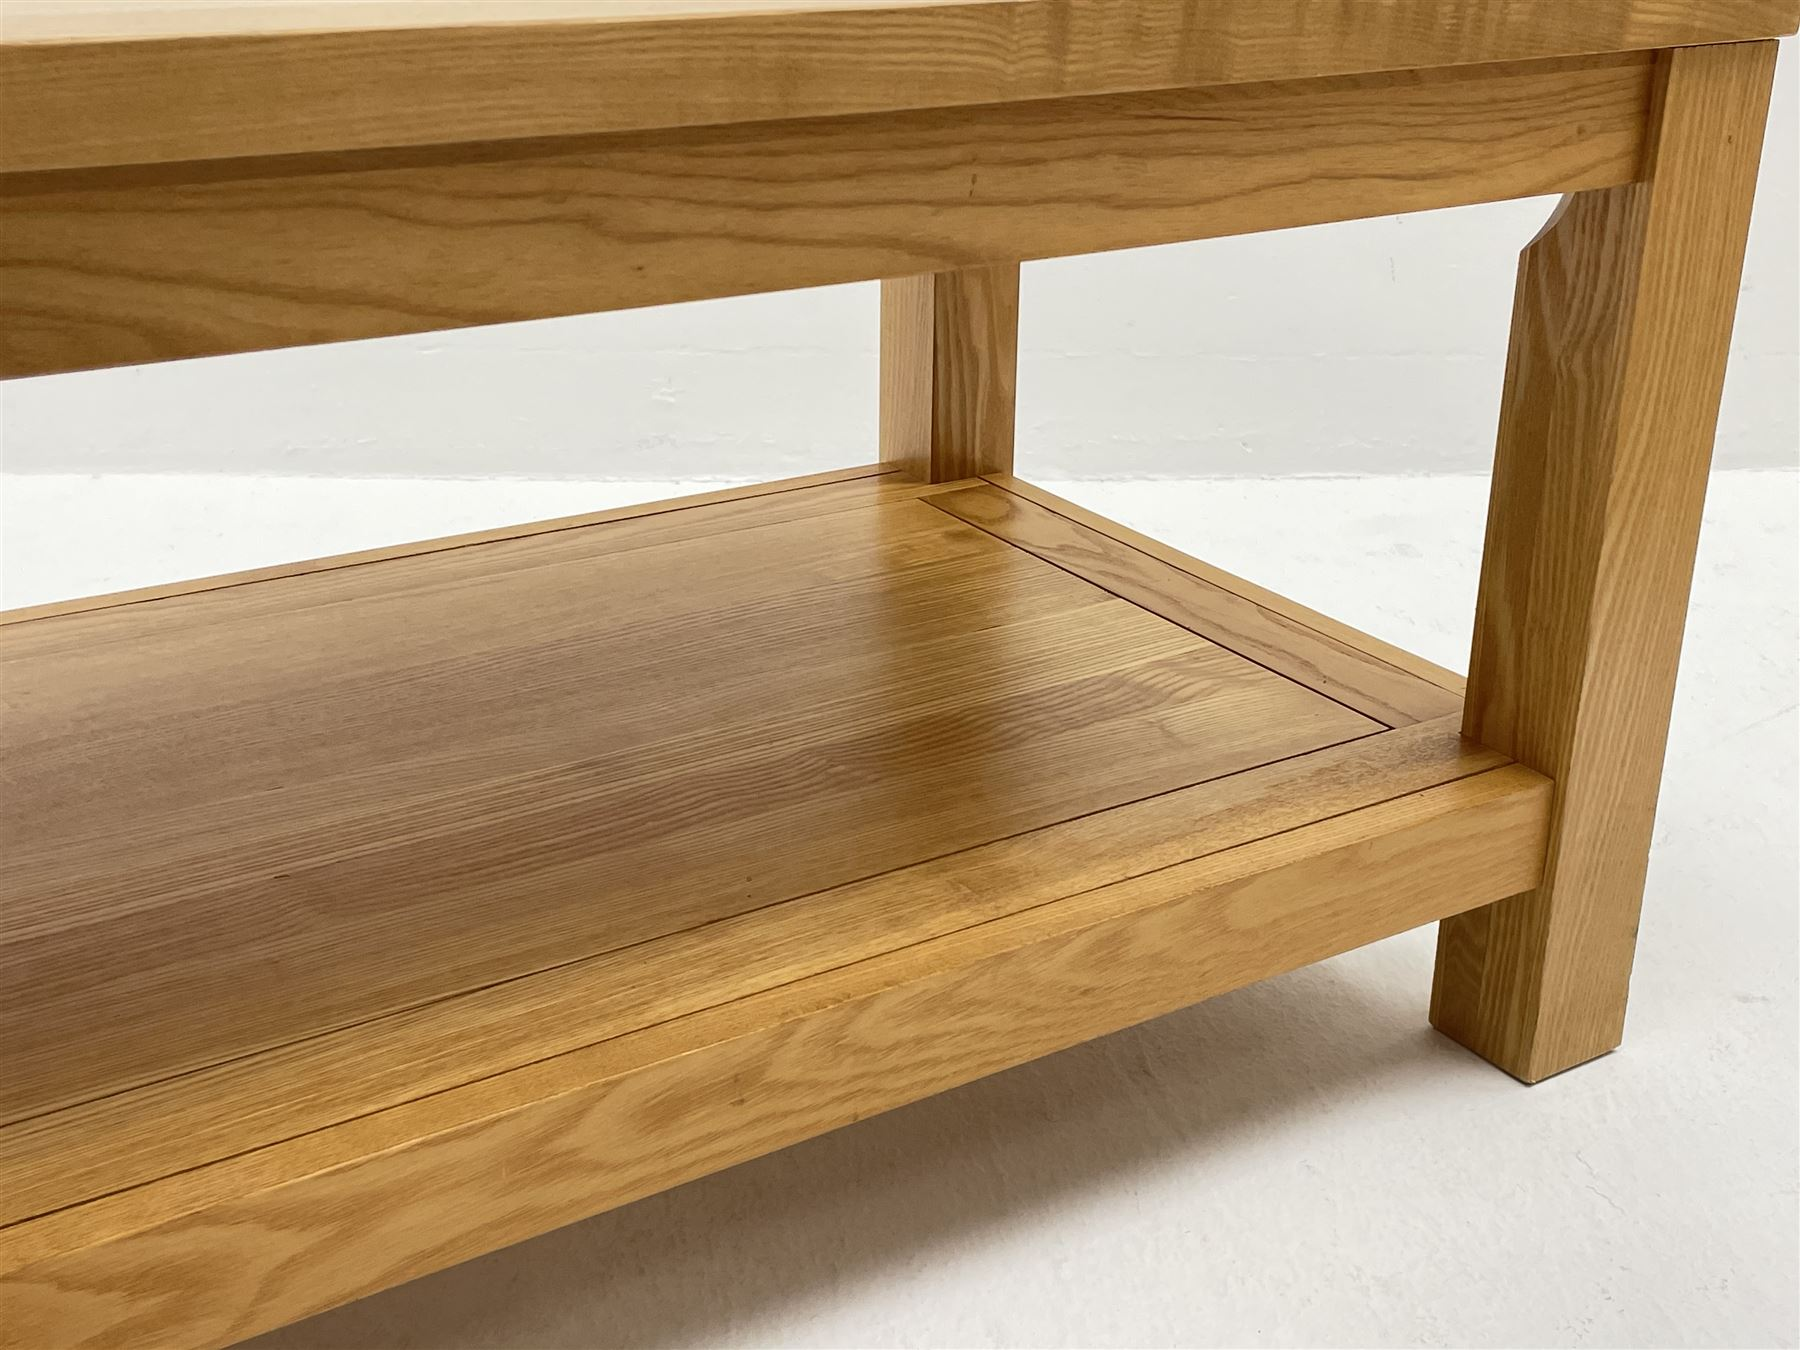 Light oak rectangular coffee table with undertier - Image 3 of 3